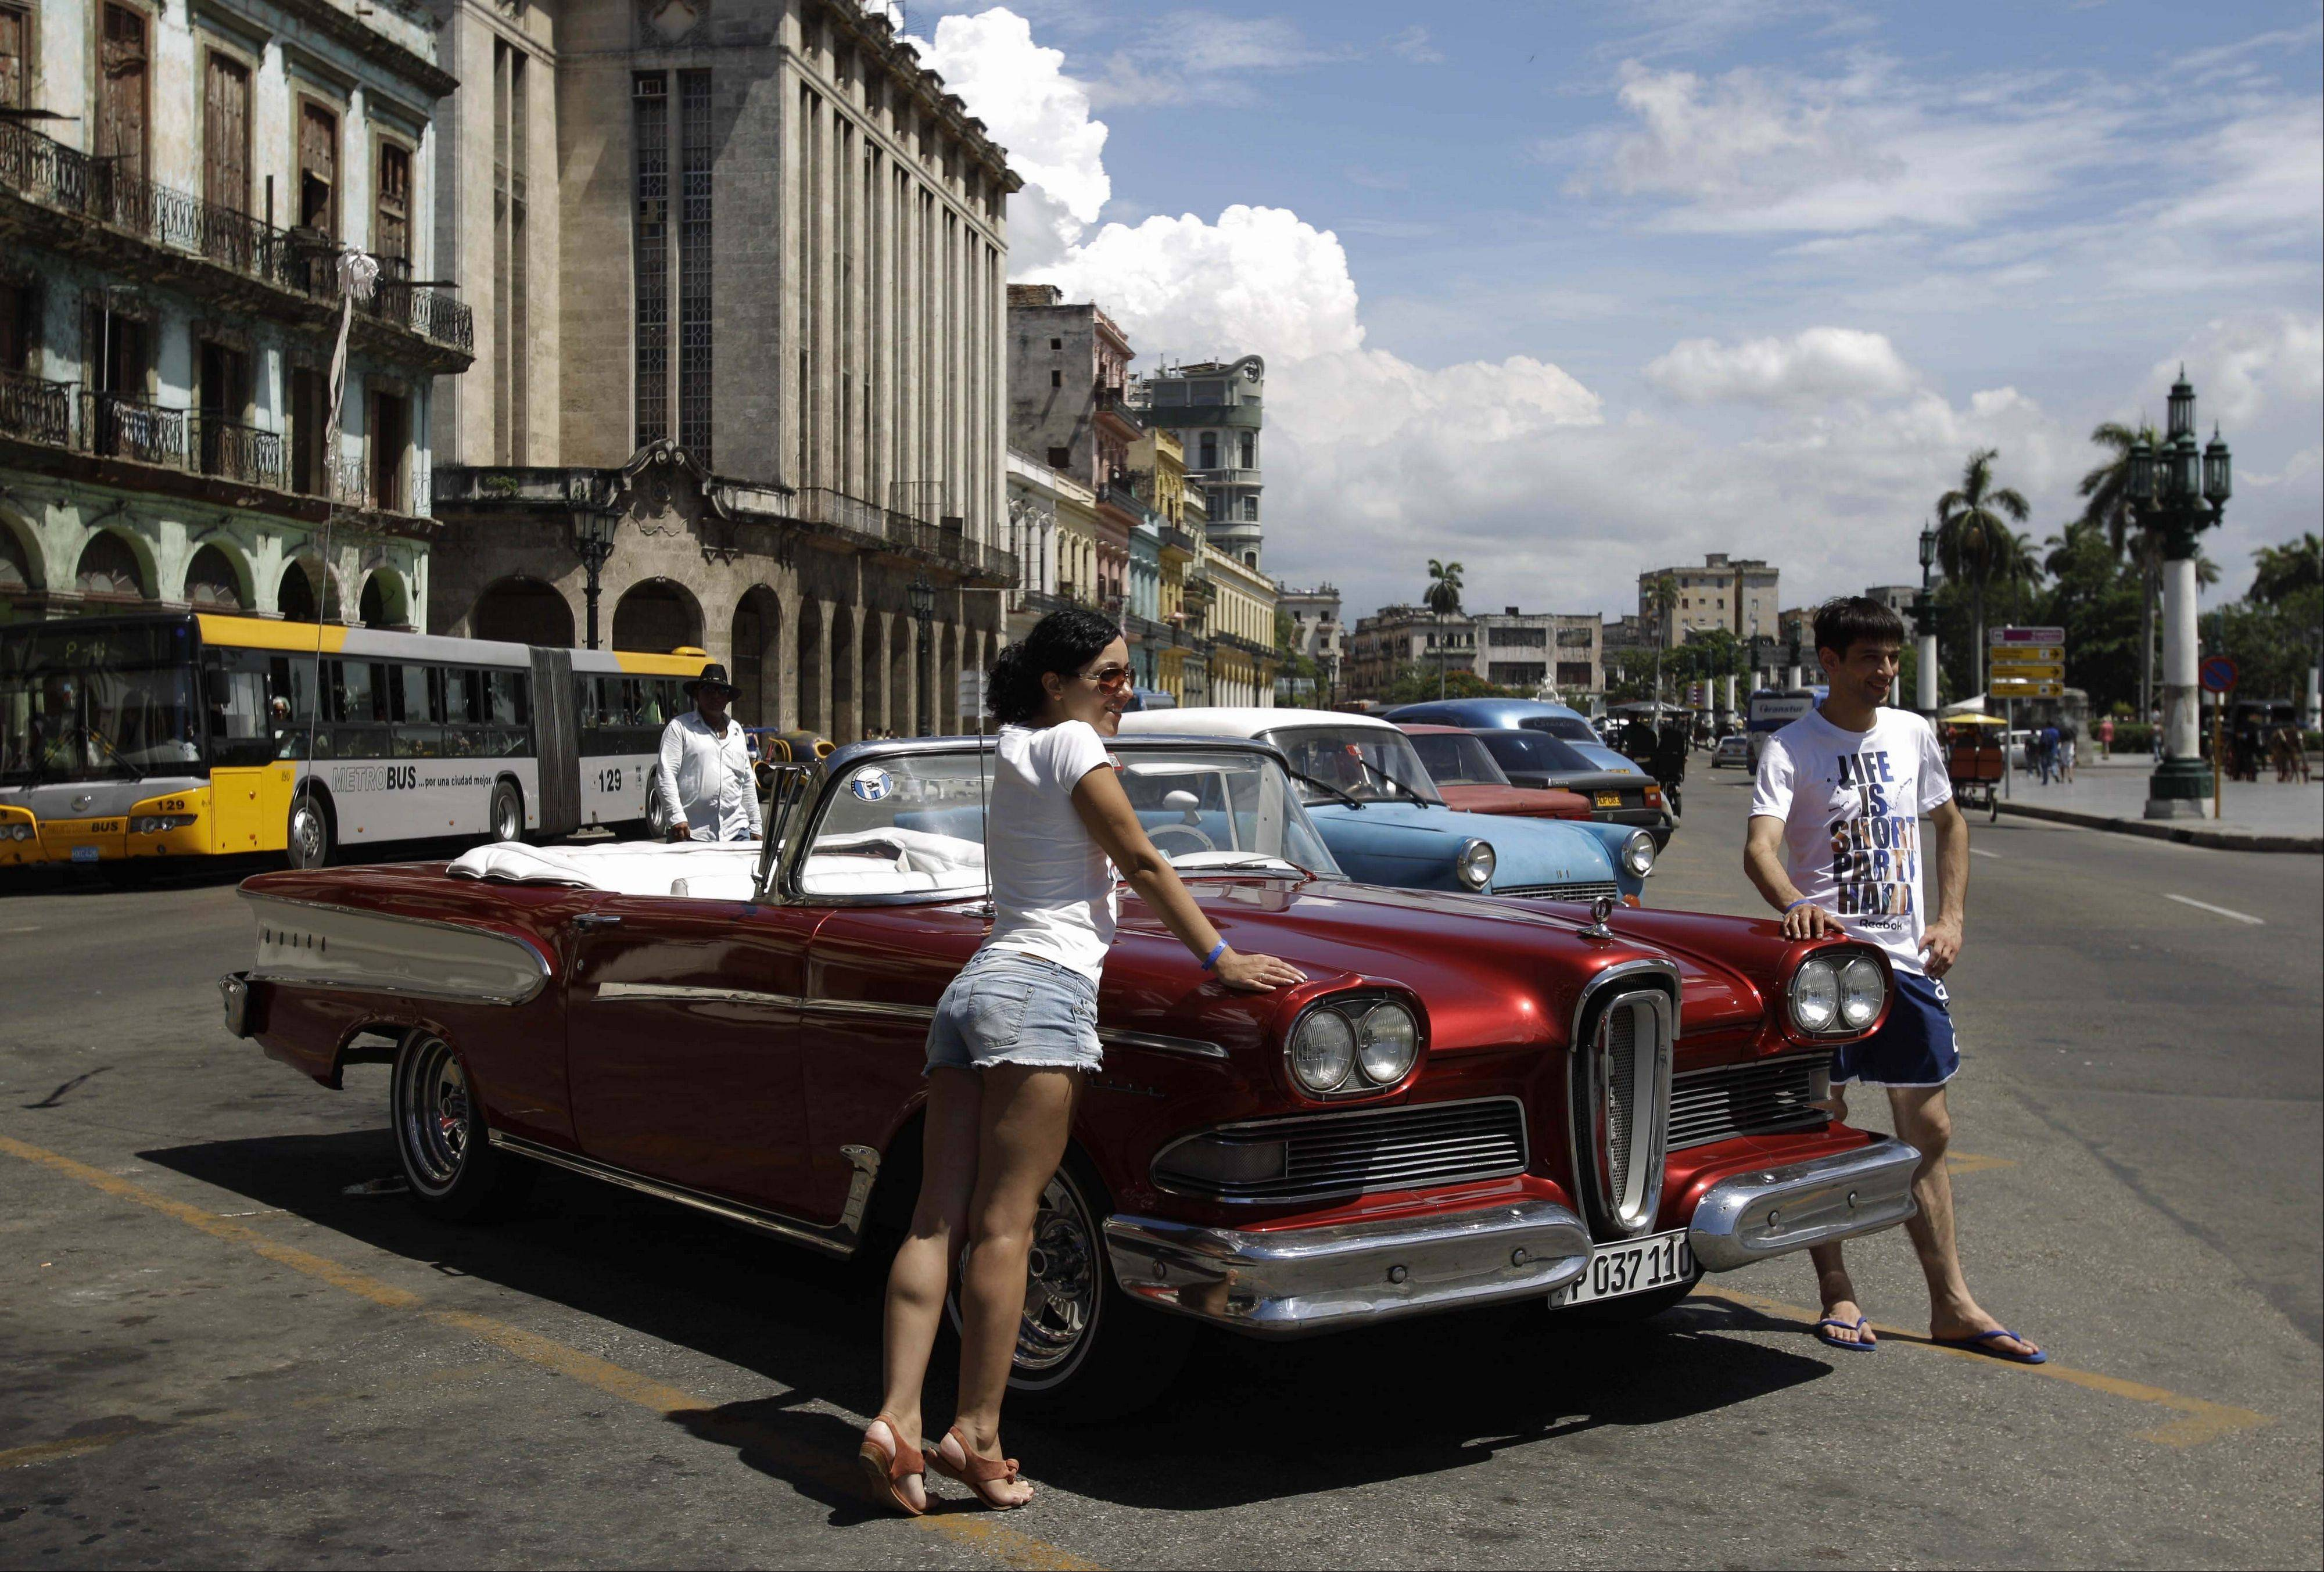 Tourists pose for a photo with a classic American car in Havana, Cuba.